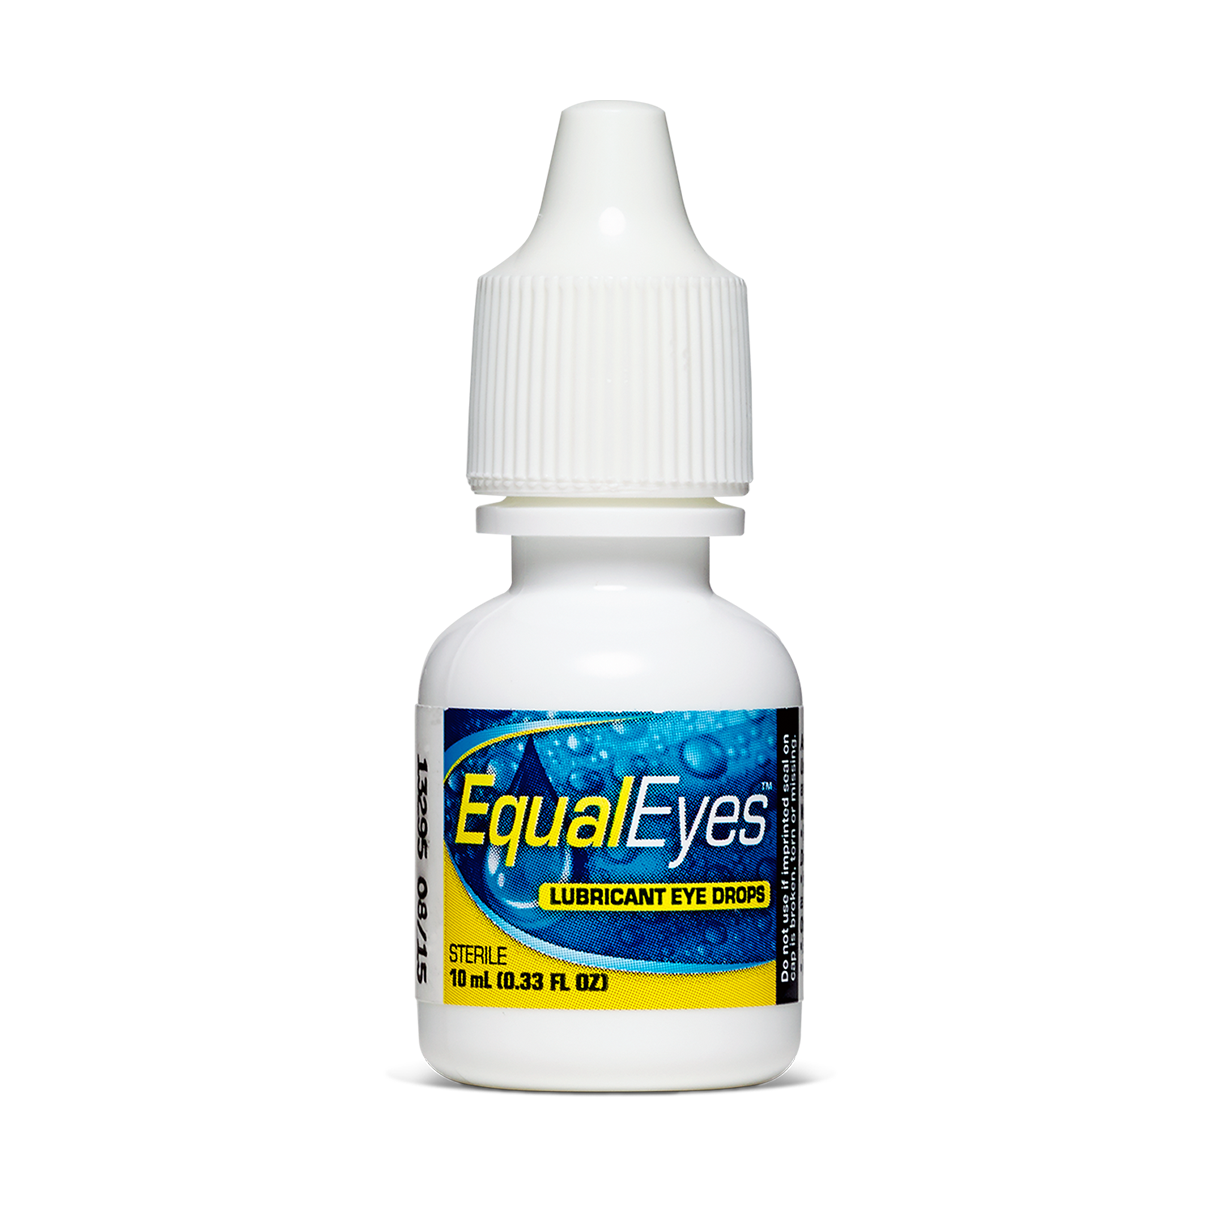 EqualEyes® Lubricant Eye Drops